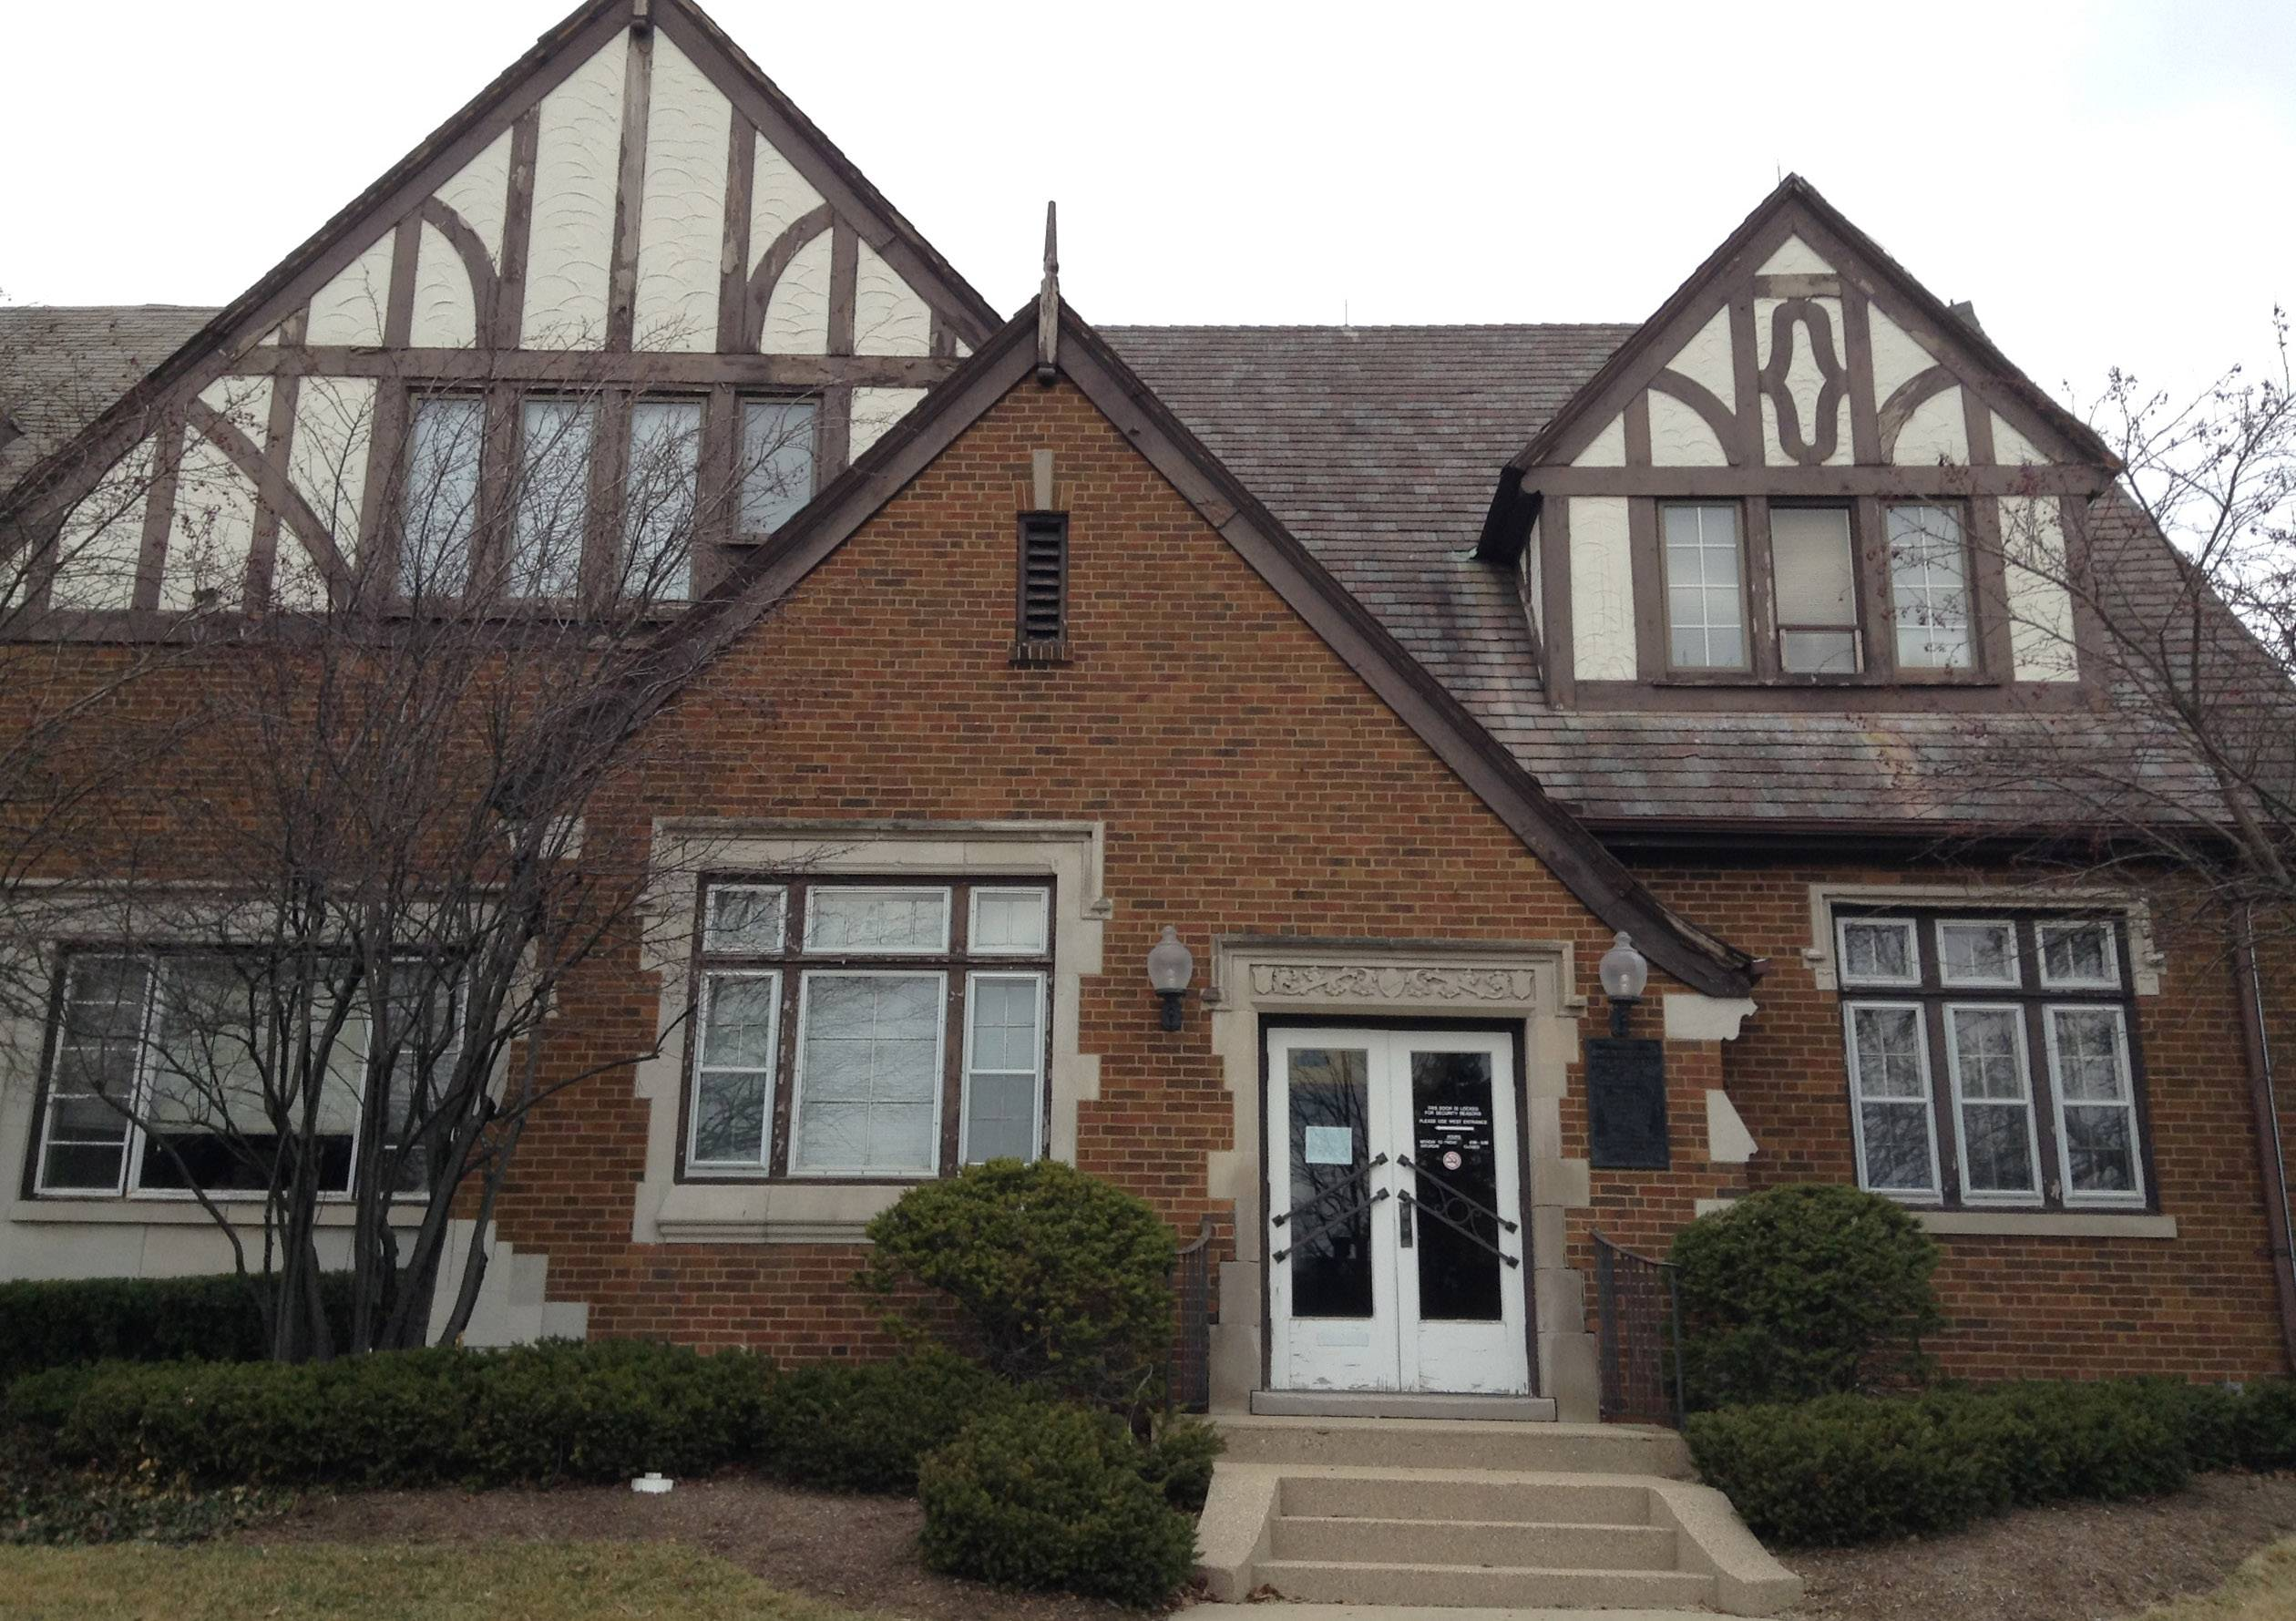 Restaurant, arts center among options for old Mundelein village hall